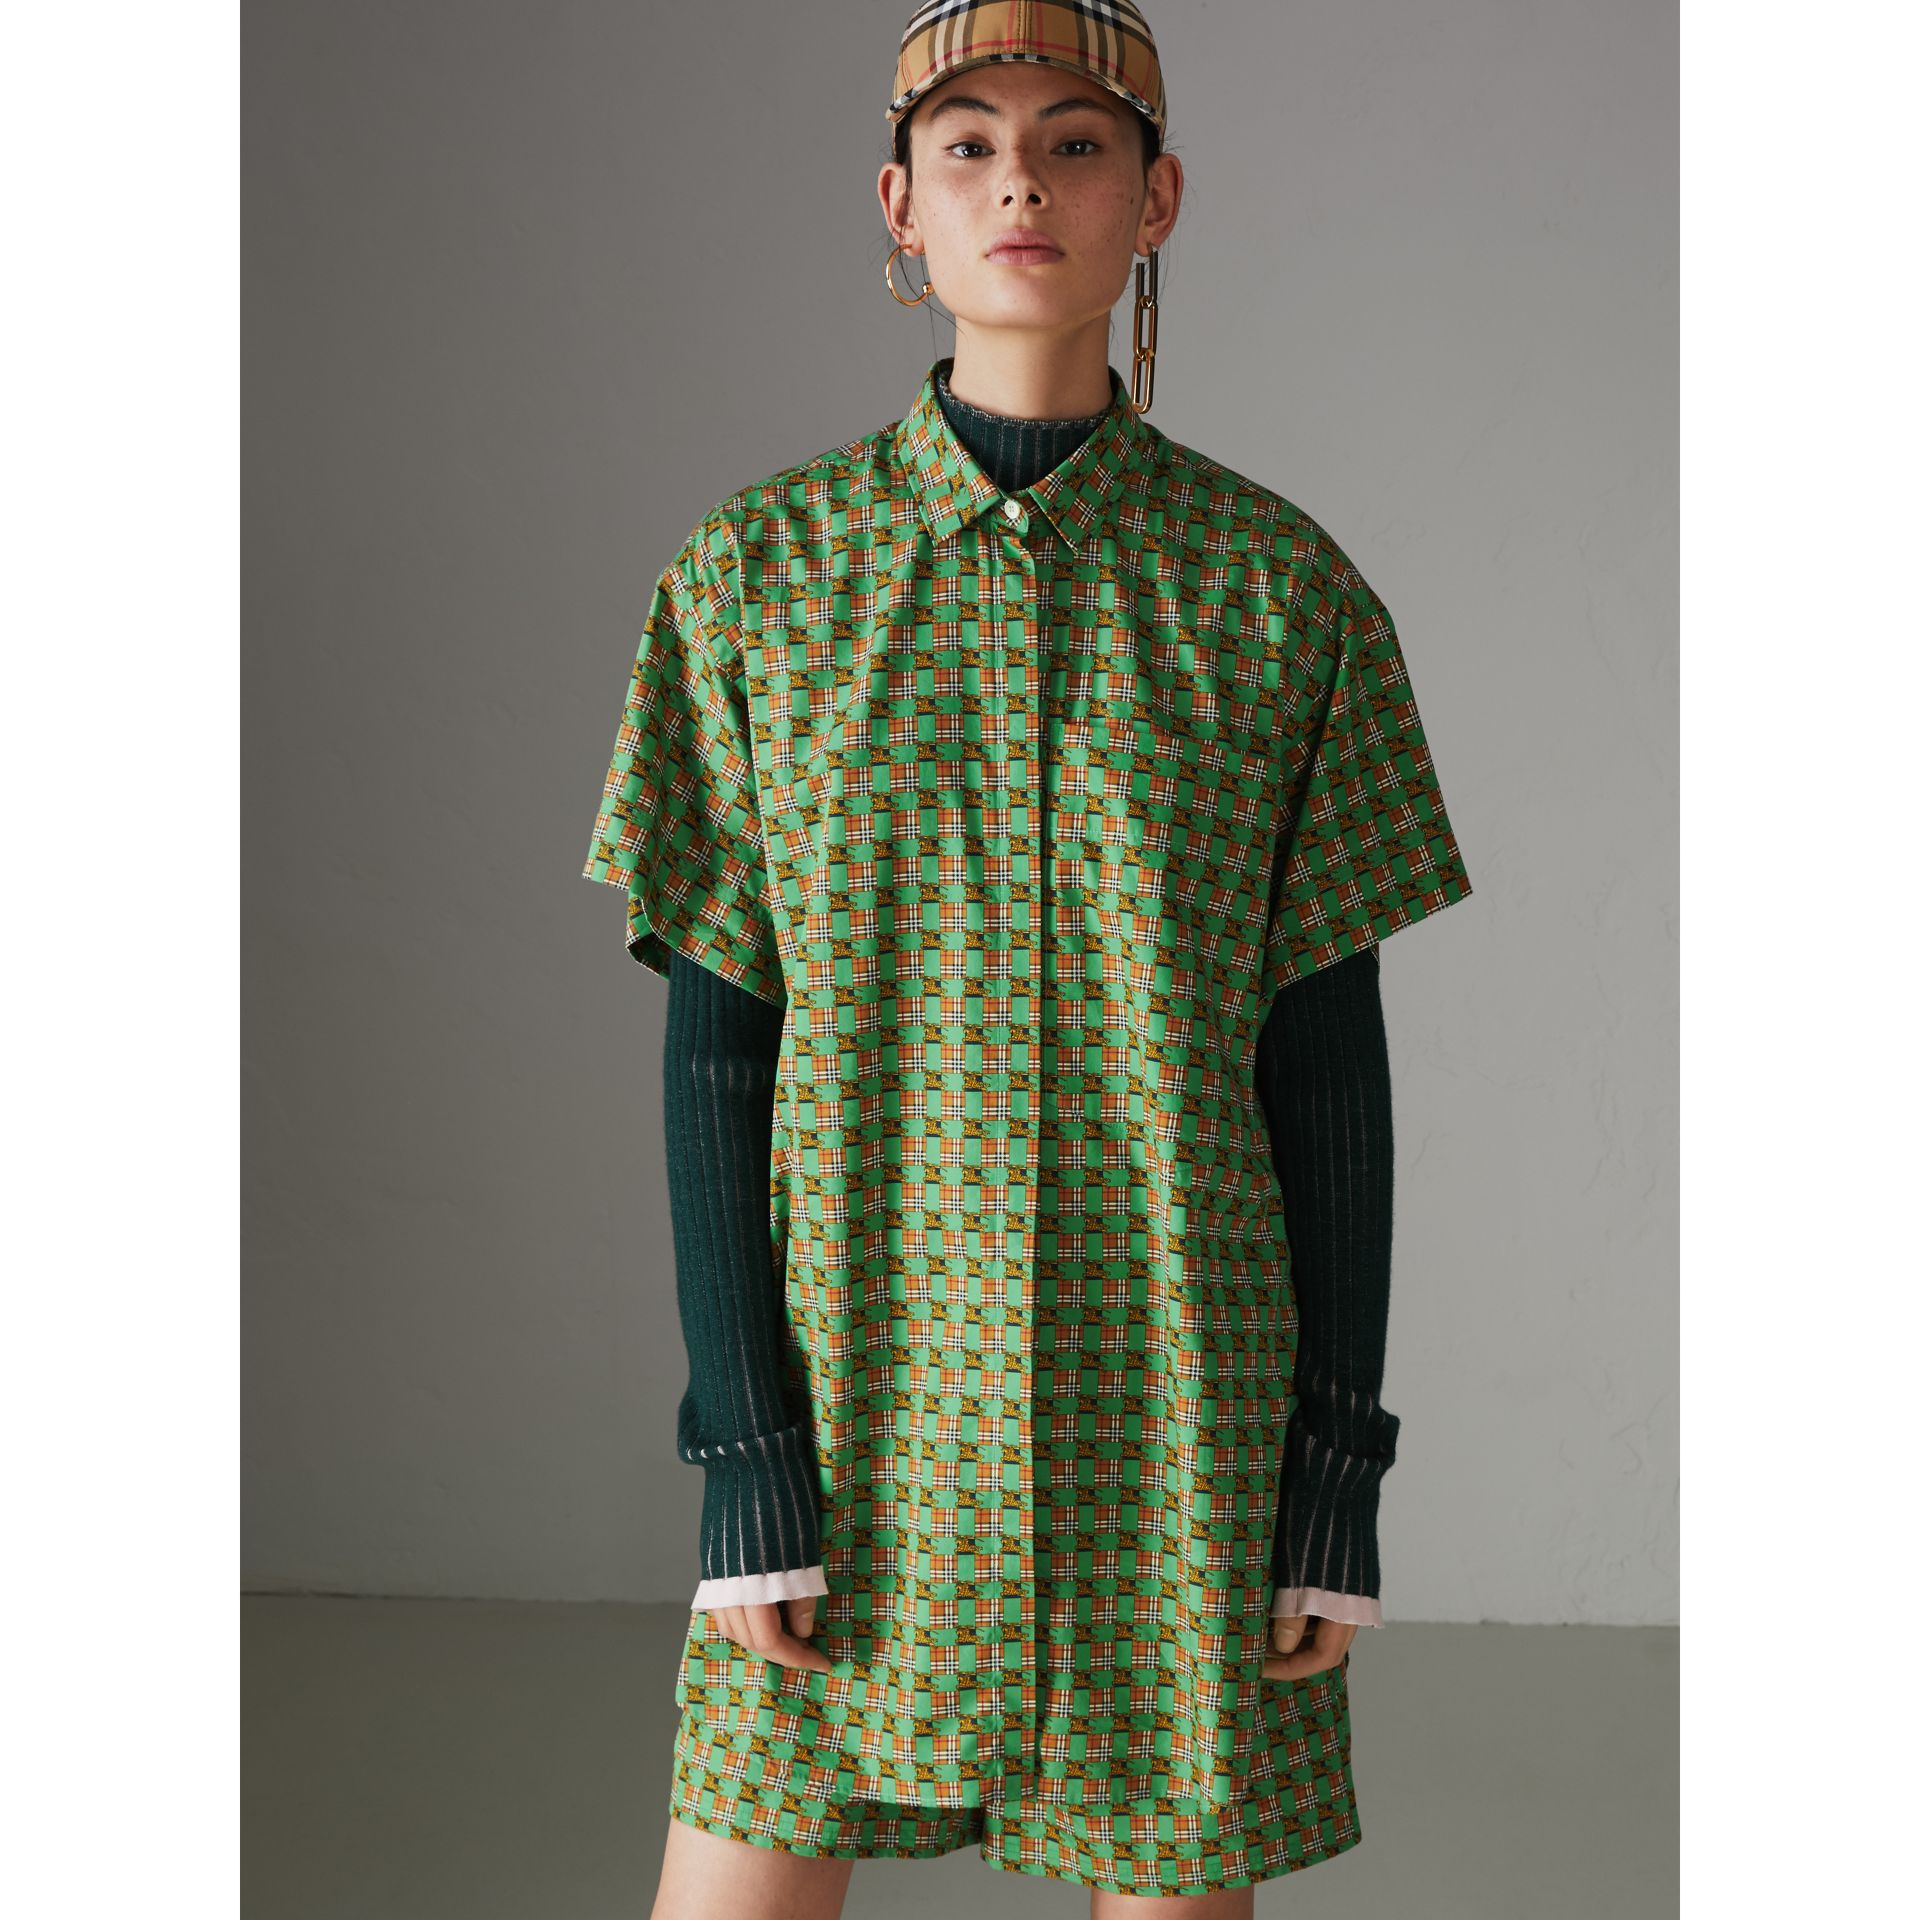 Short-sleeve Tiled Archive Print Cotton Shirt in Dark Forest Green - Women | Burberry United States - gallery image 4